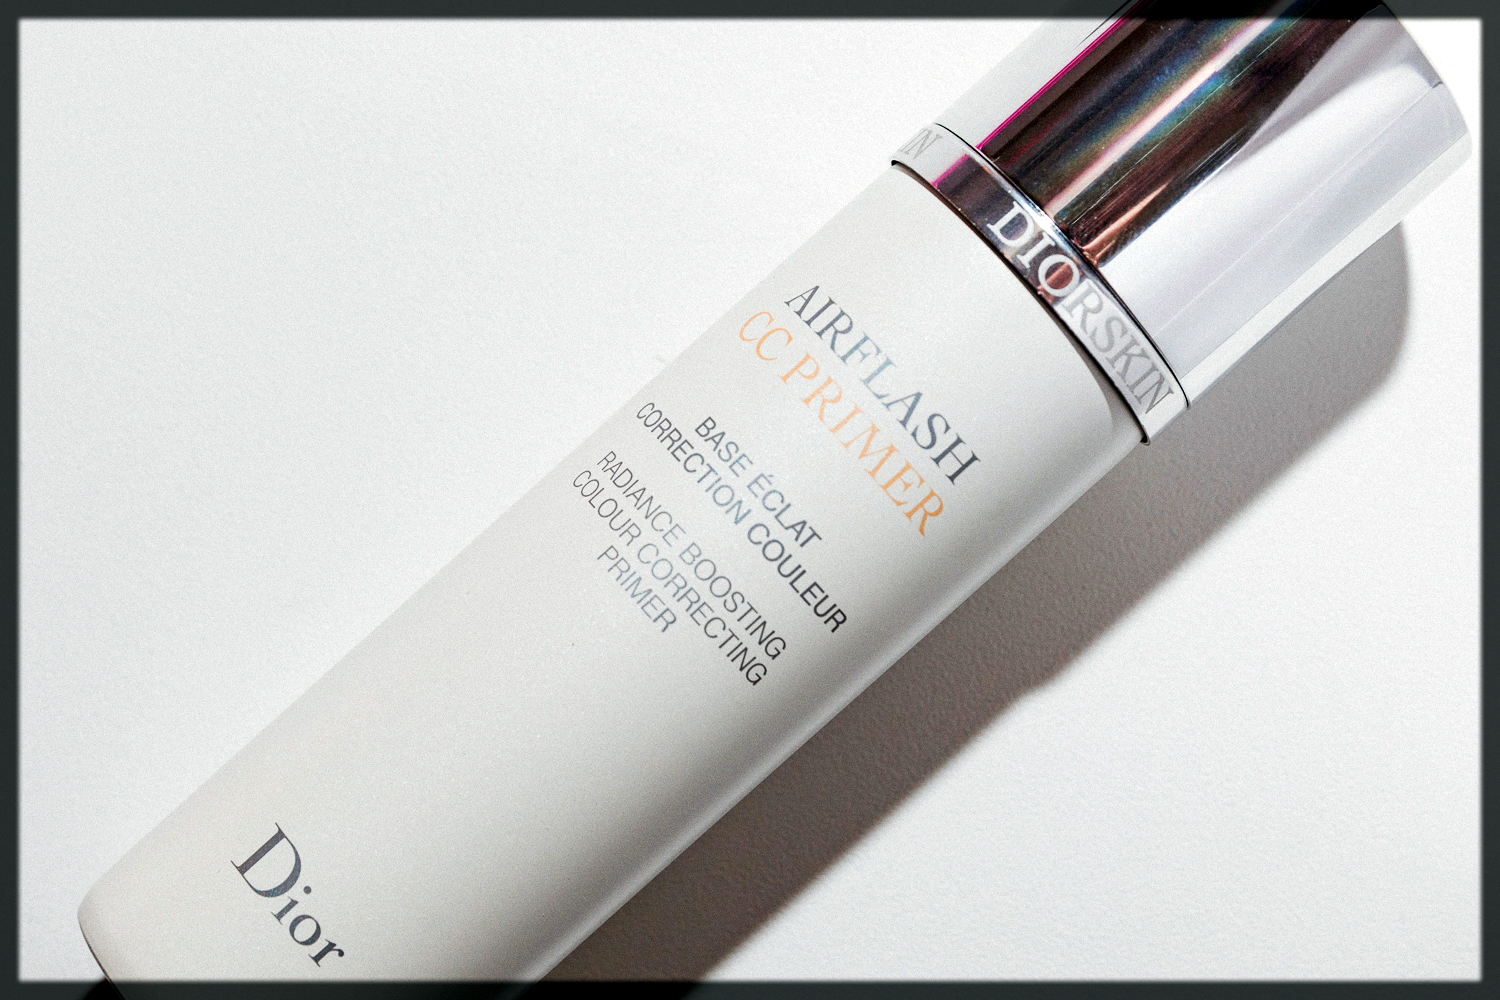 Dior Best Makeup Primers Brand